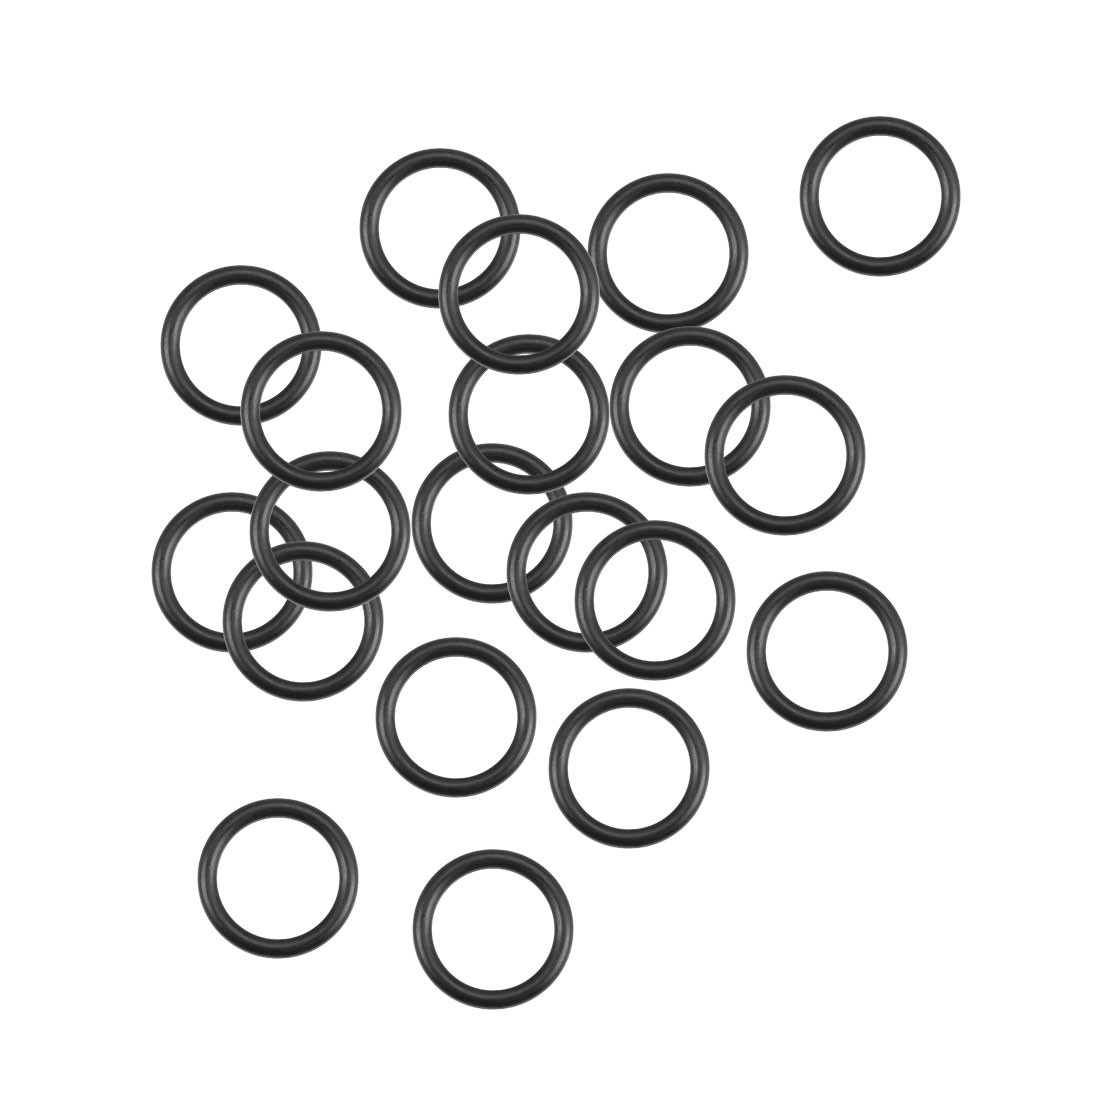 O-Rings Nitrile Rubber 10.6mm x 14.2mm x 1.8mm Round Seal Gasket 20Pcs